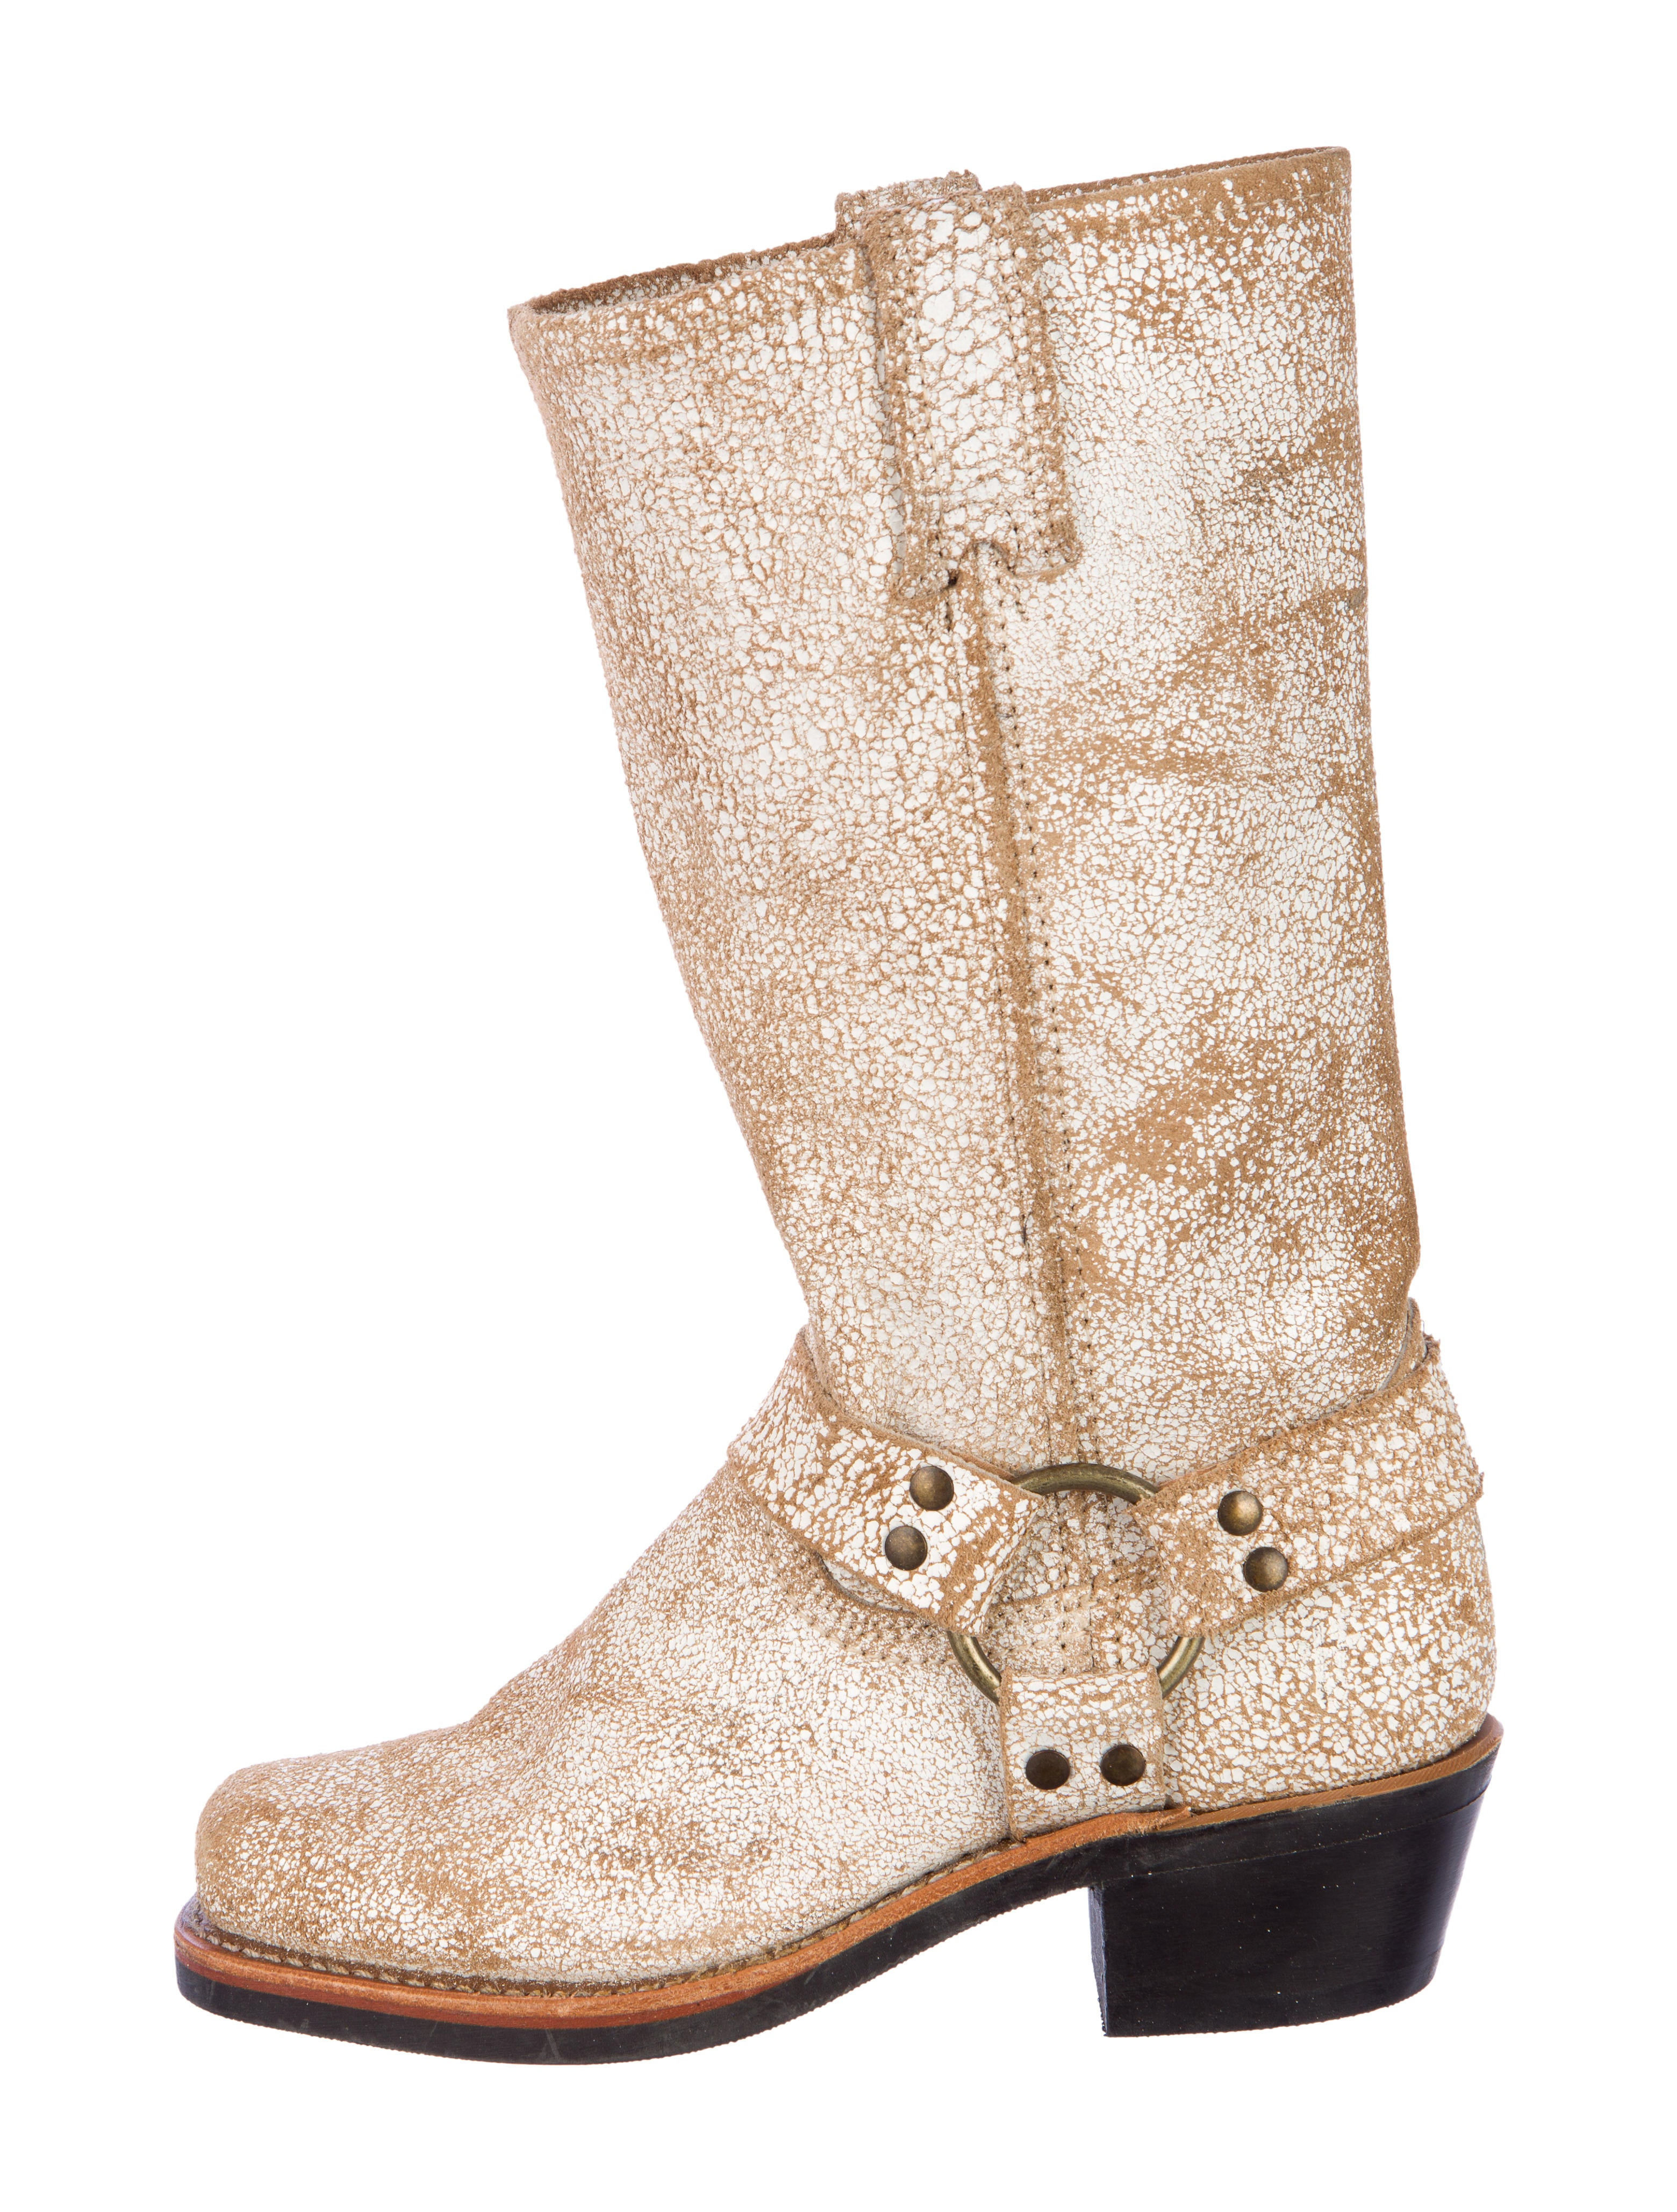 frye boots shoes wf820134 the realreal